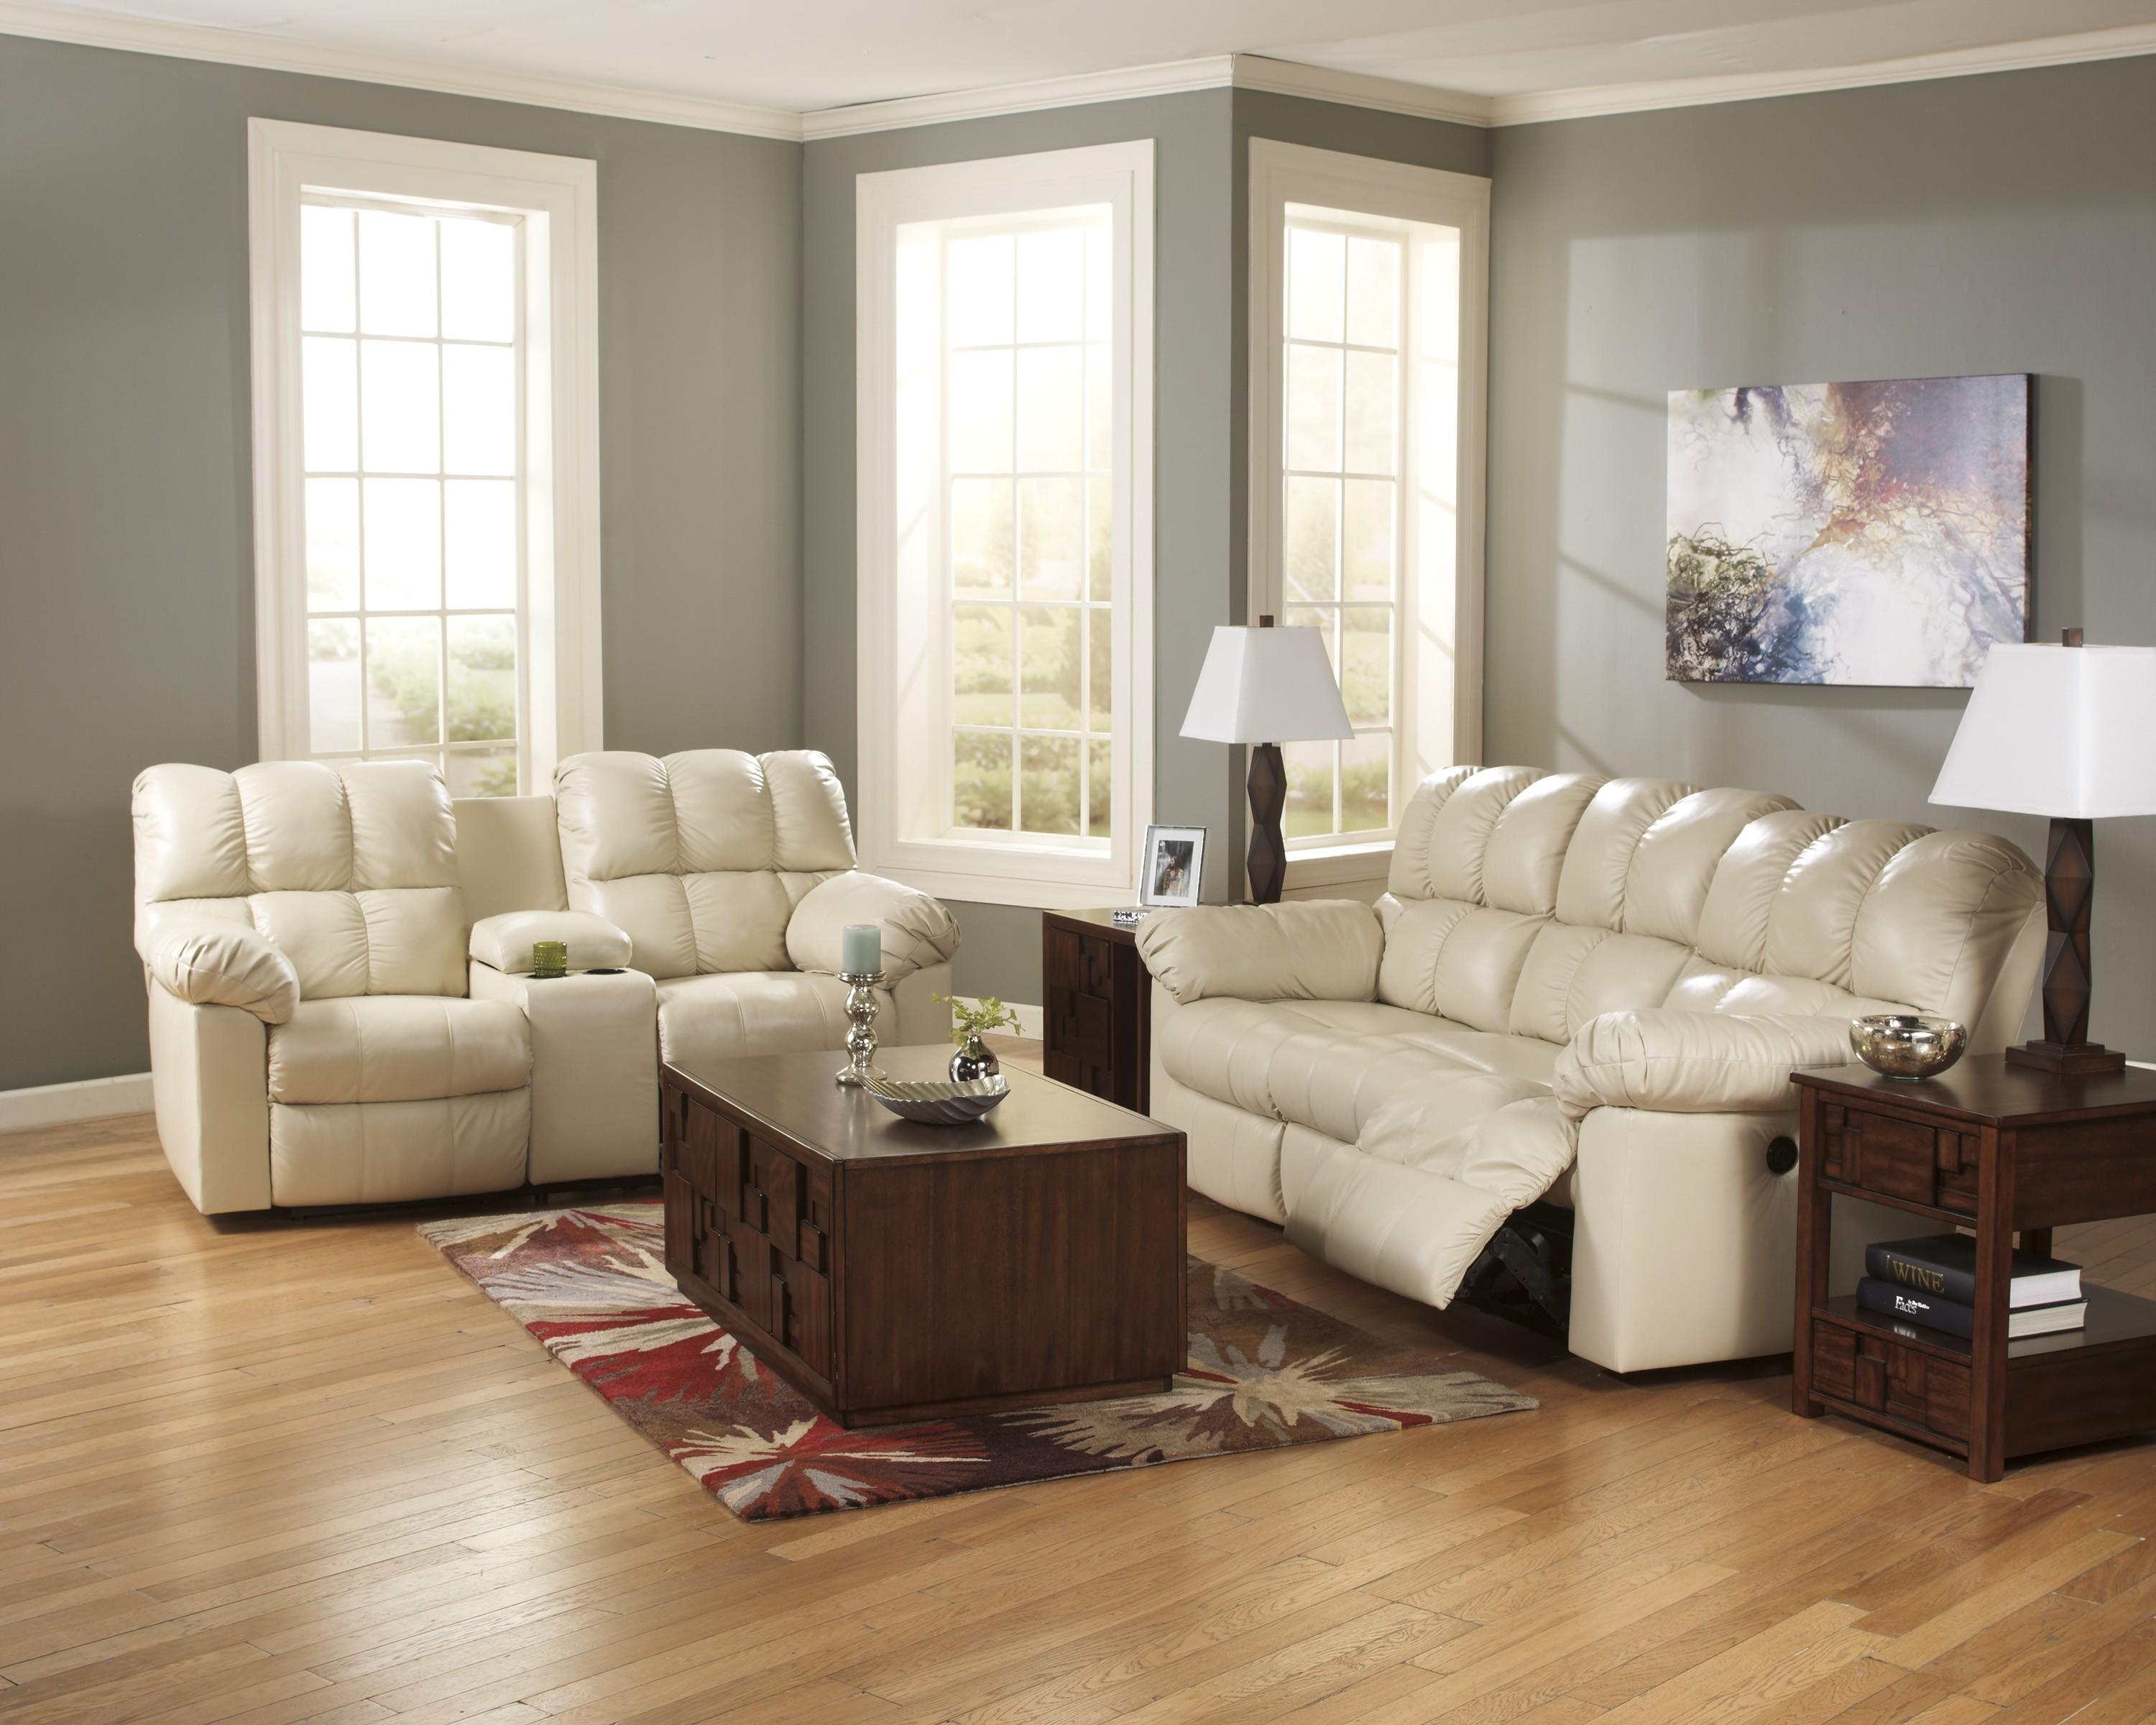 Cream And Oak Lounge Furniture